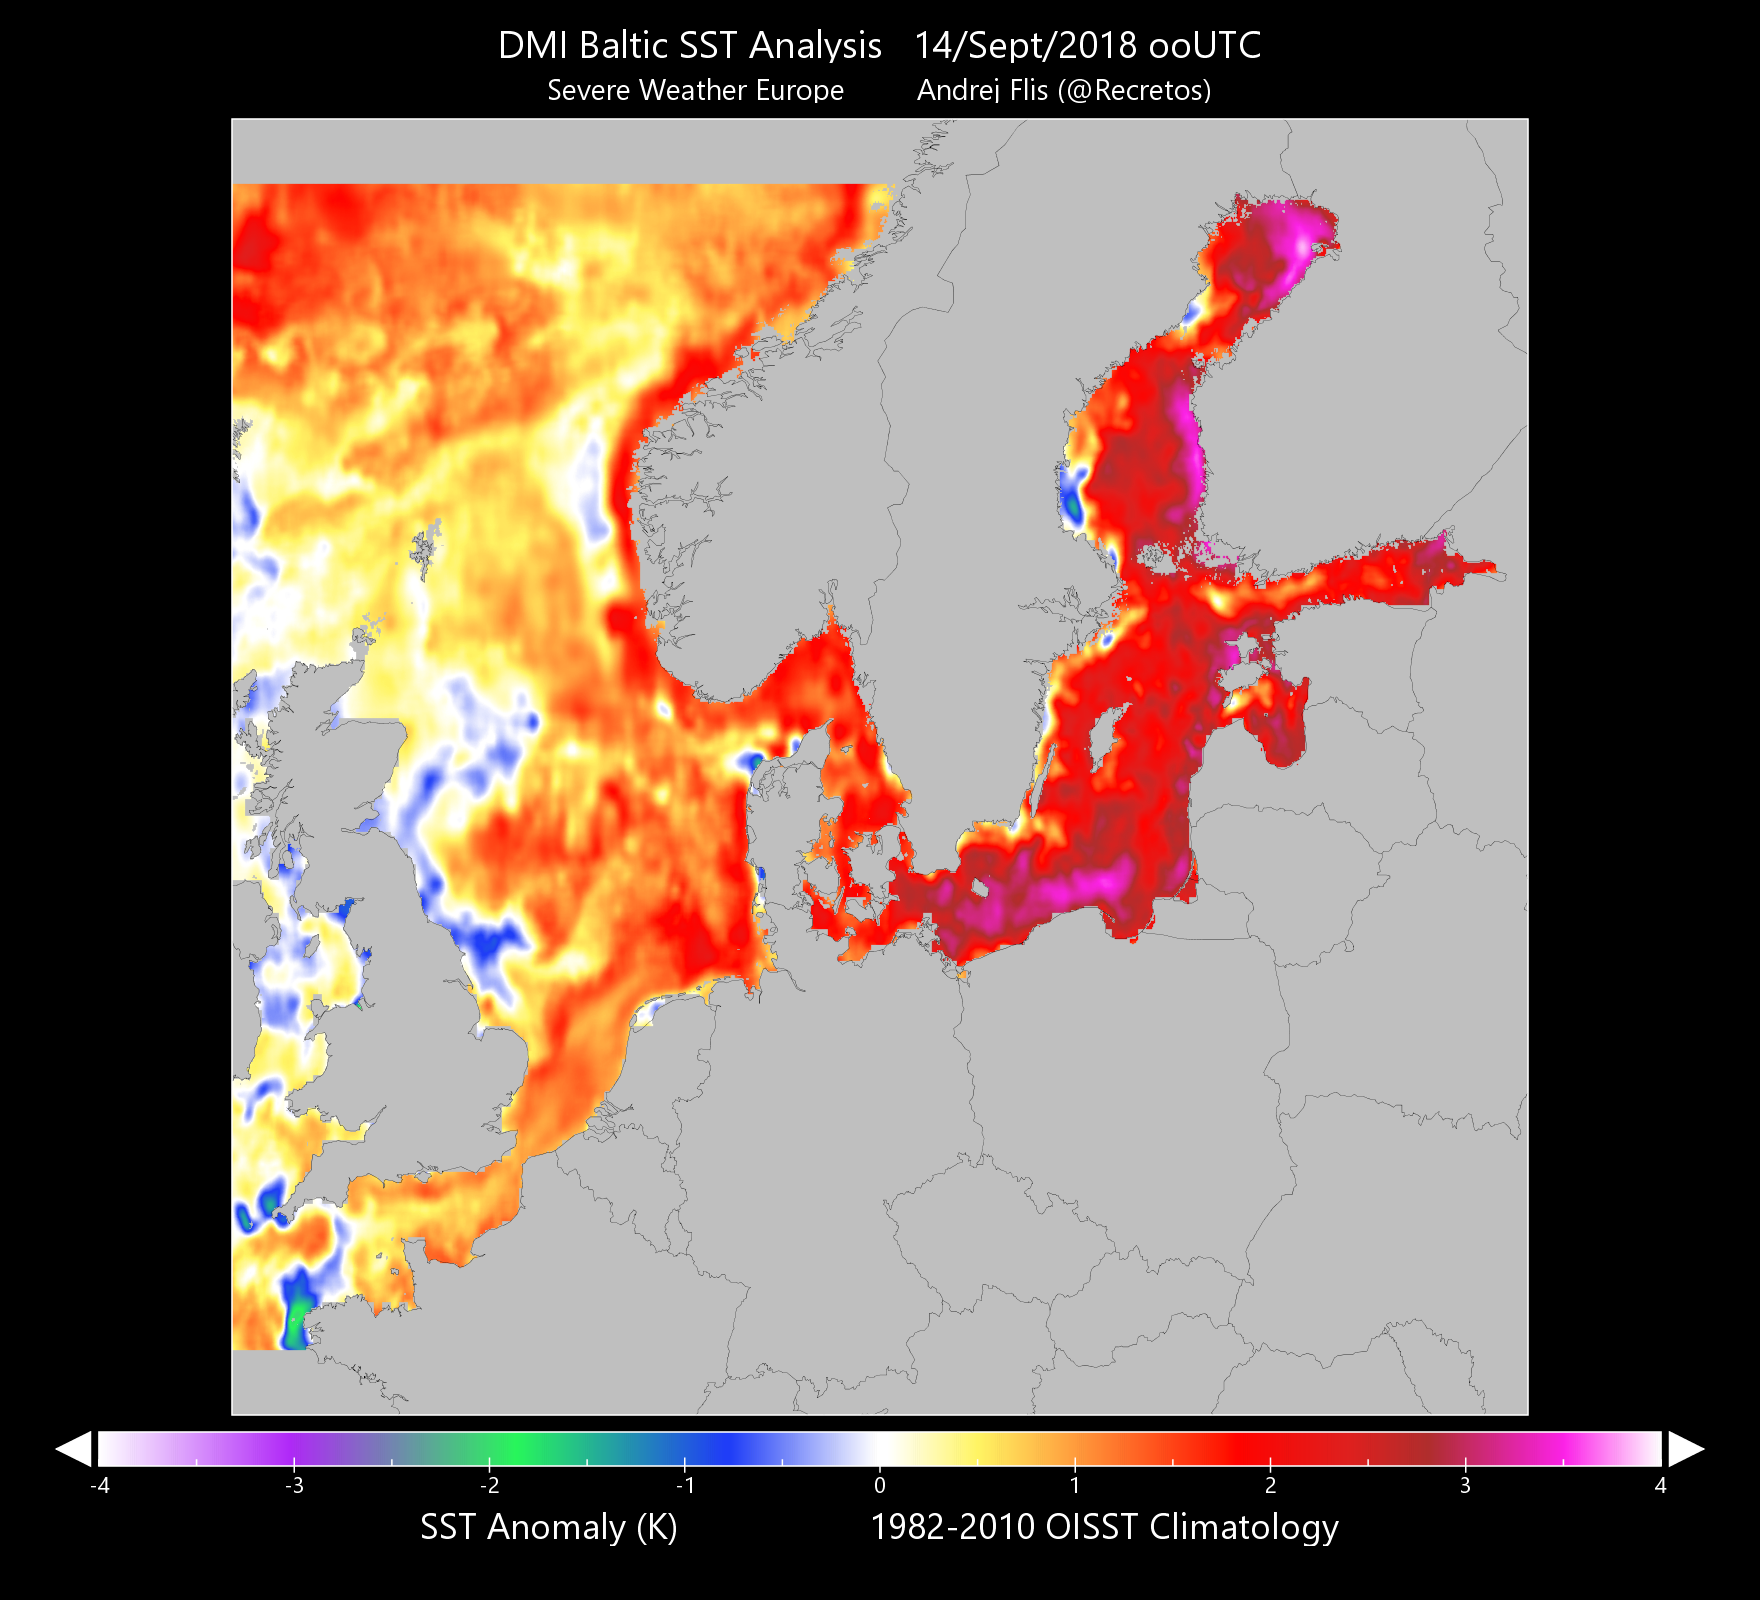 The Baltic Sea is up to 3-4 °C warmer than average right now ...